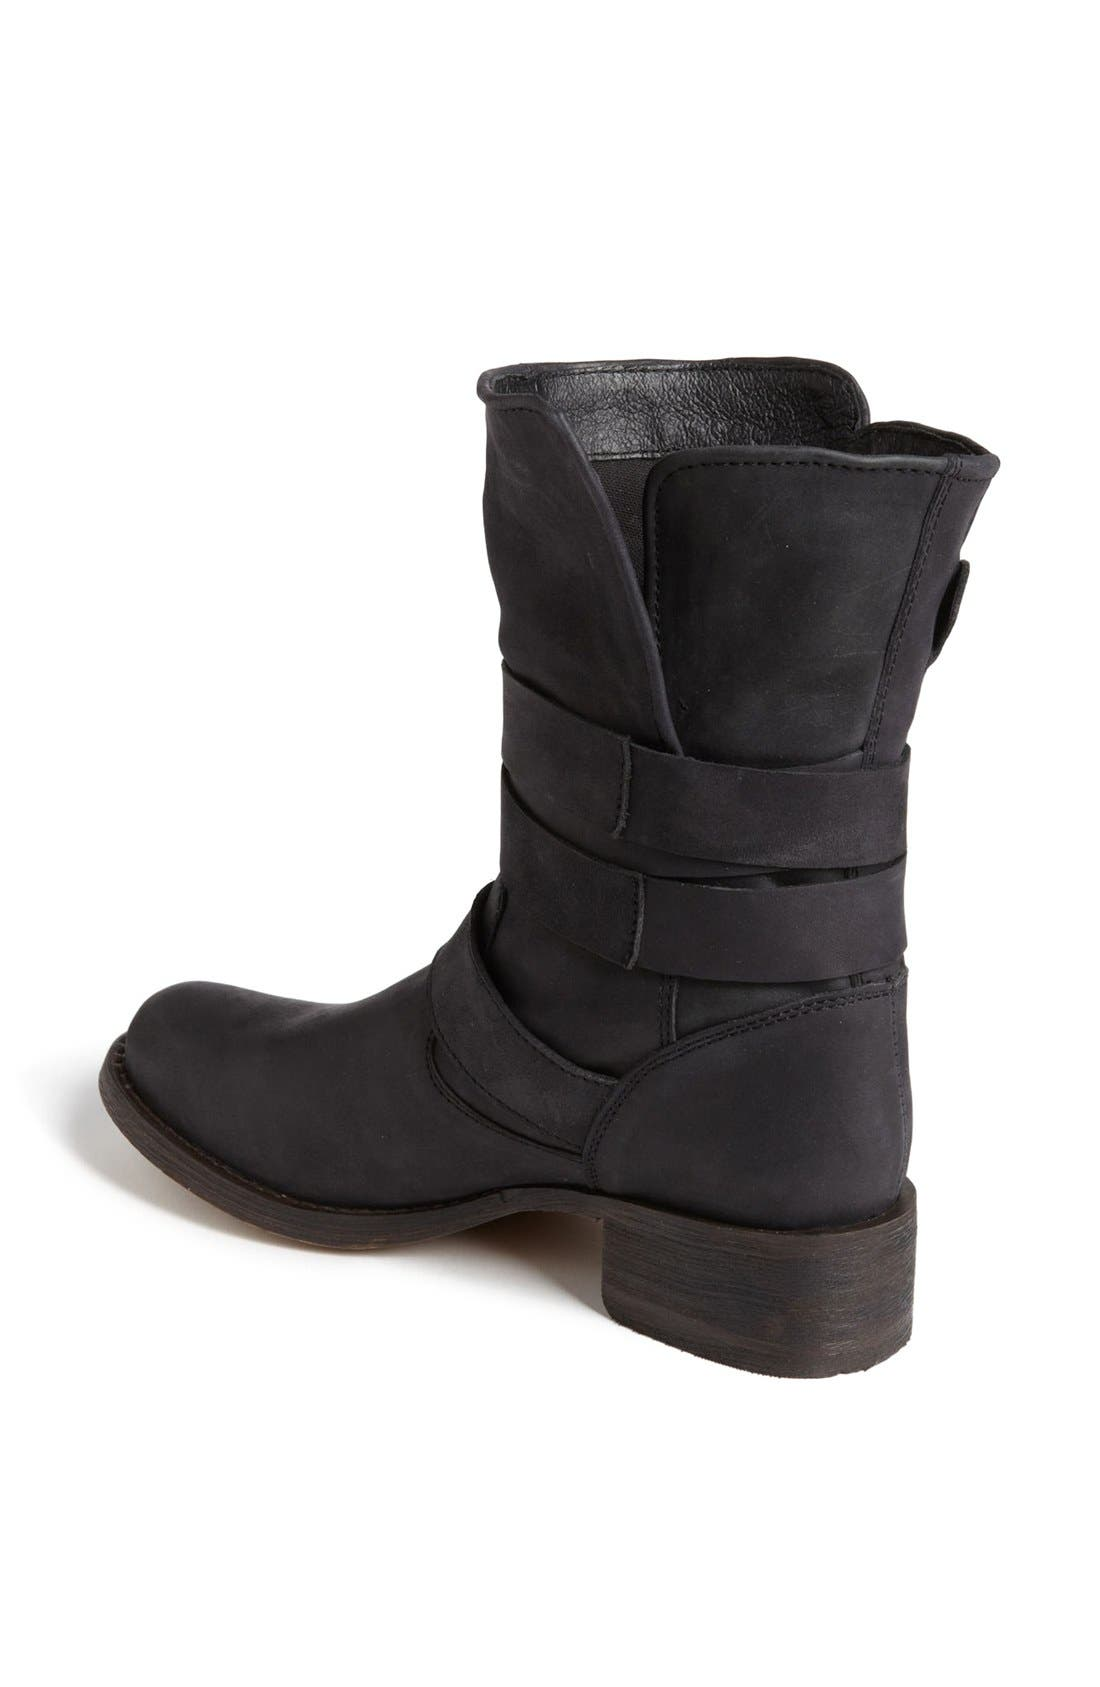 STEVE MADDEN, 'Brewzzer' Boot, Alternate thumbnail 2, color, 001